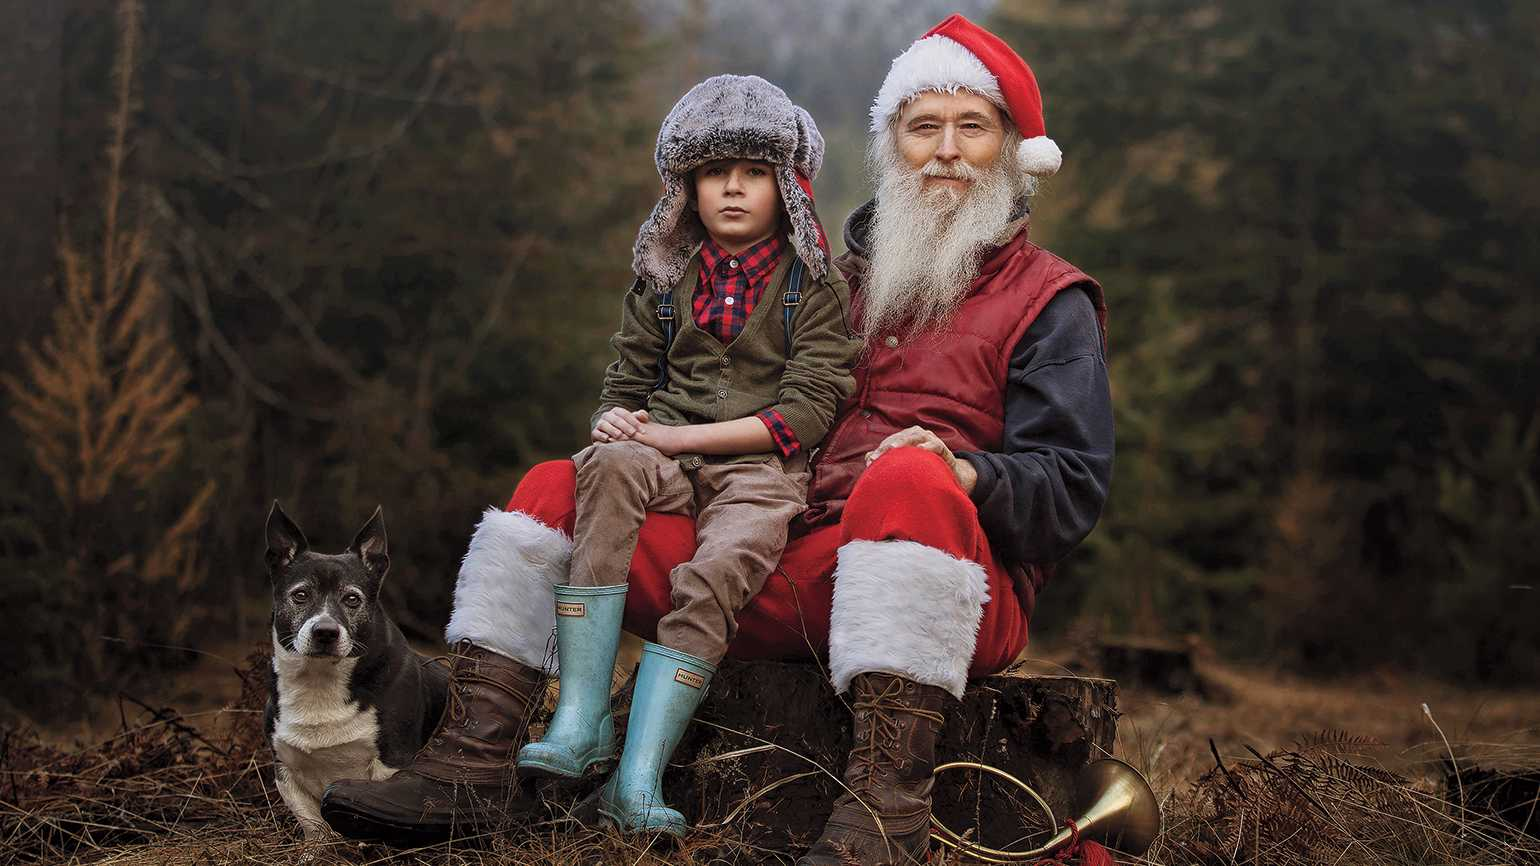 Robin's son Ryder poses with Santa Claus and his dog at the Christmas-tree farm